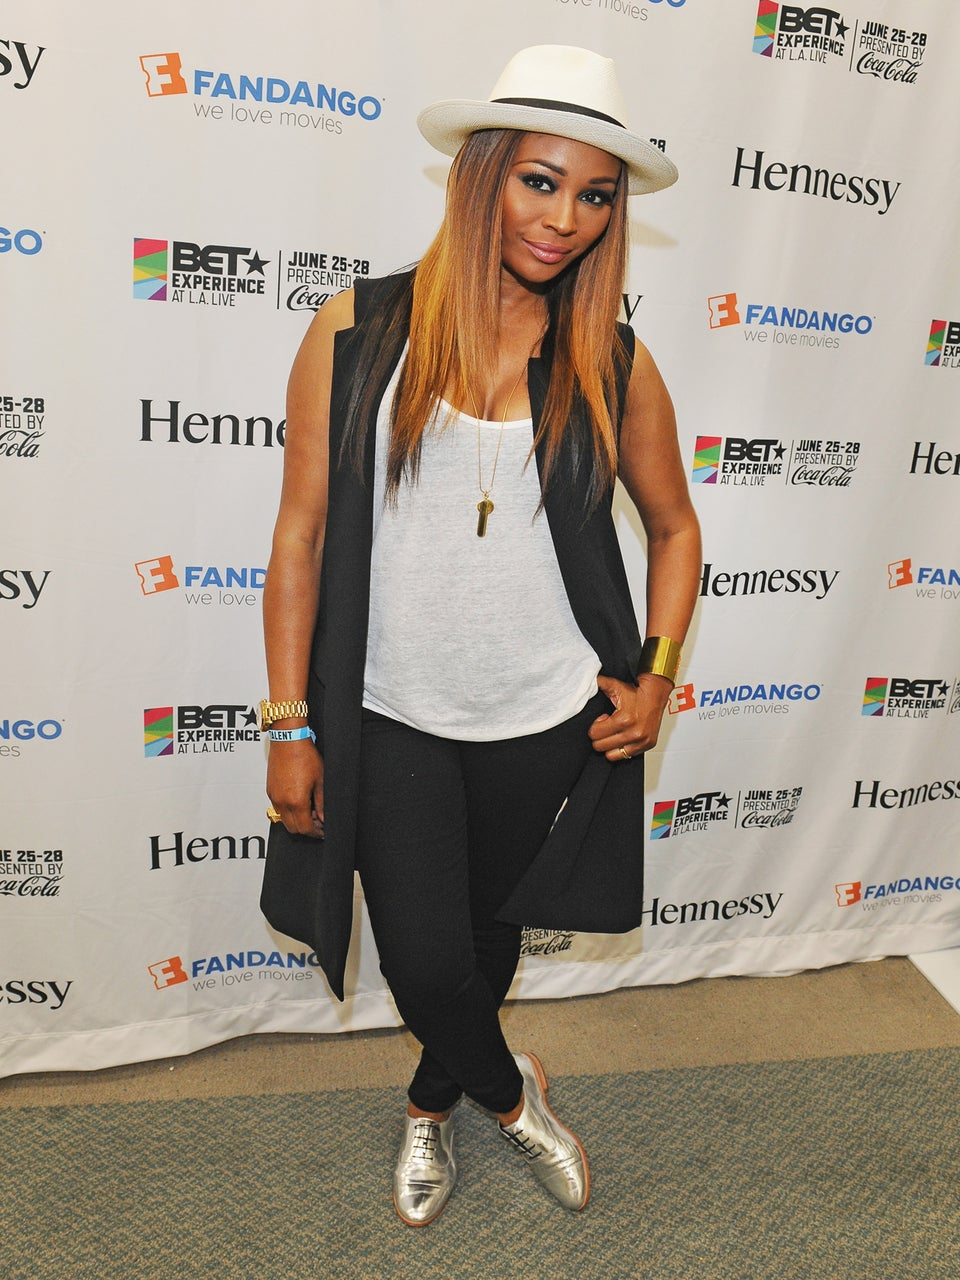 EXCLUSIVE: Cynthia Bailey 'Applauds' Nene Leakes' 'Housewives' Departure